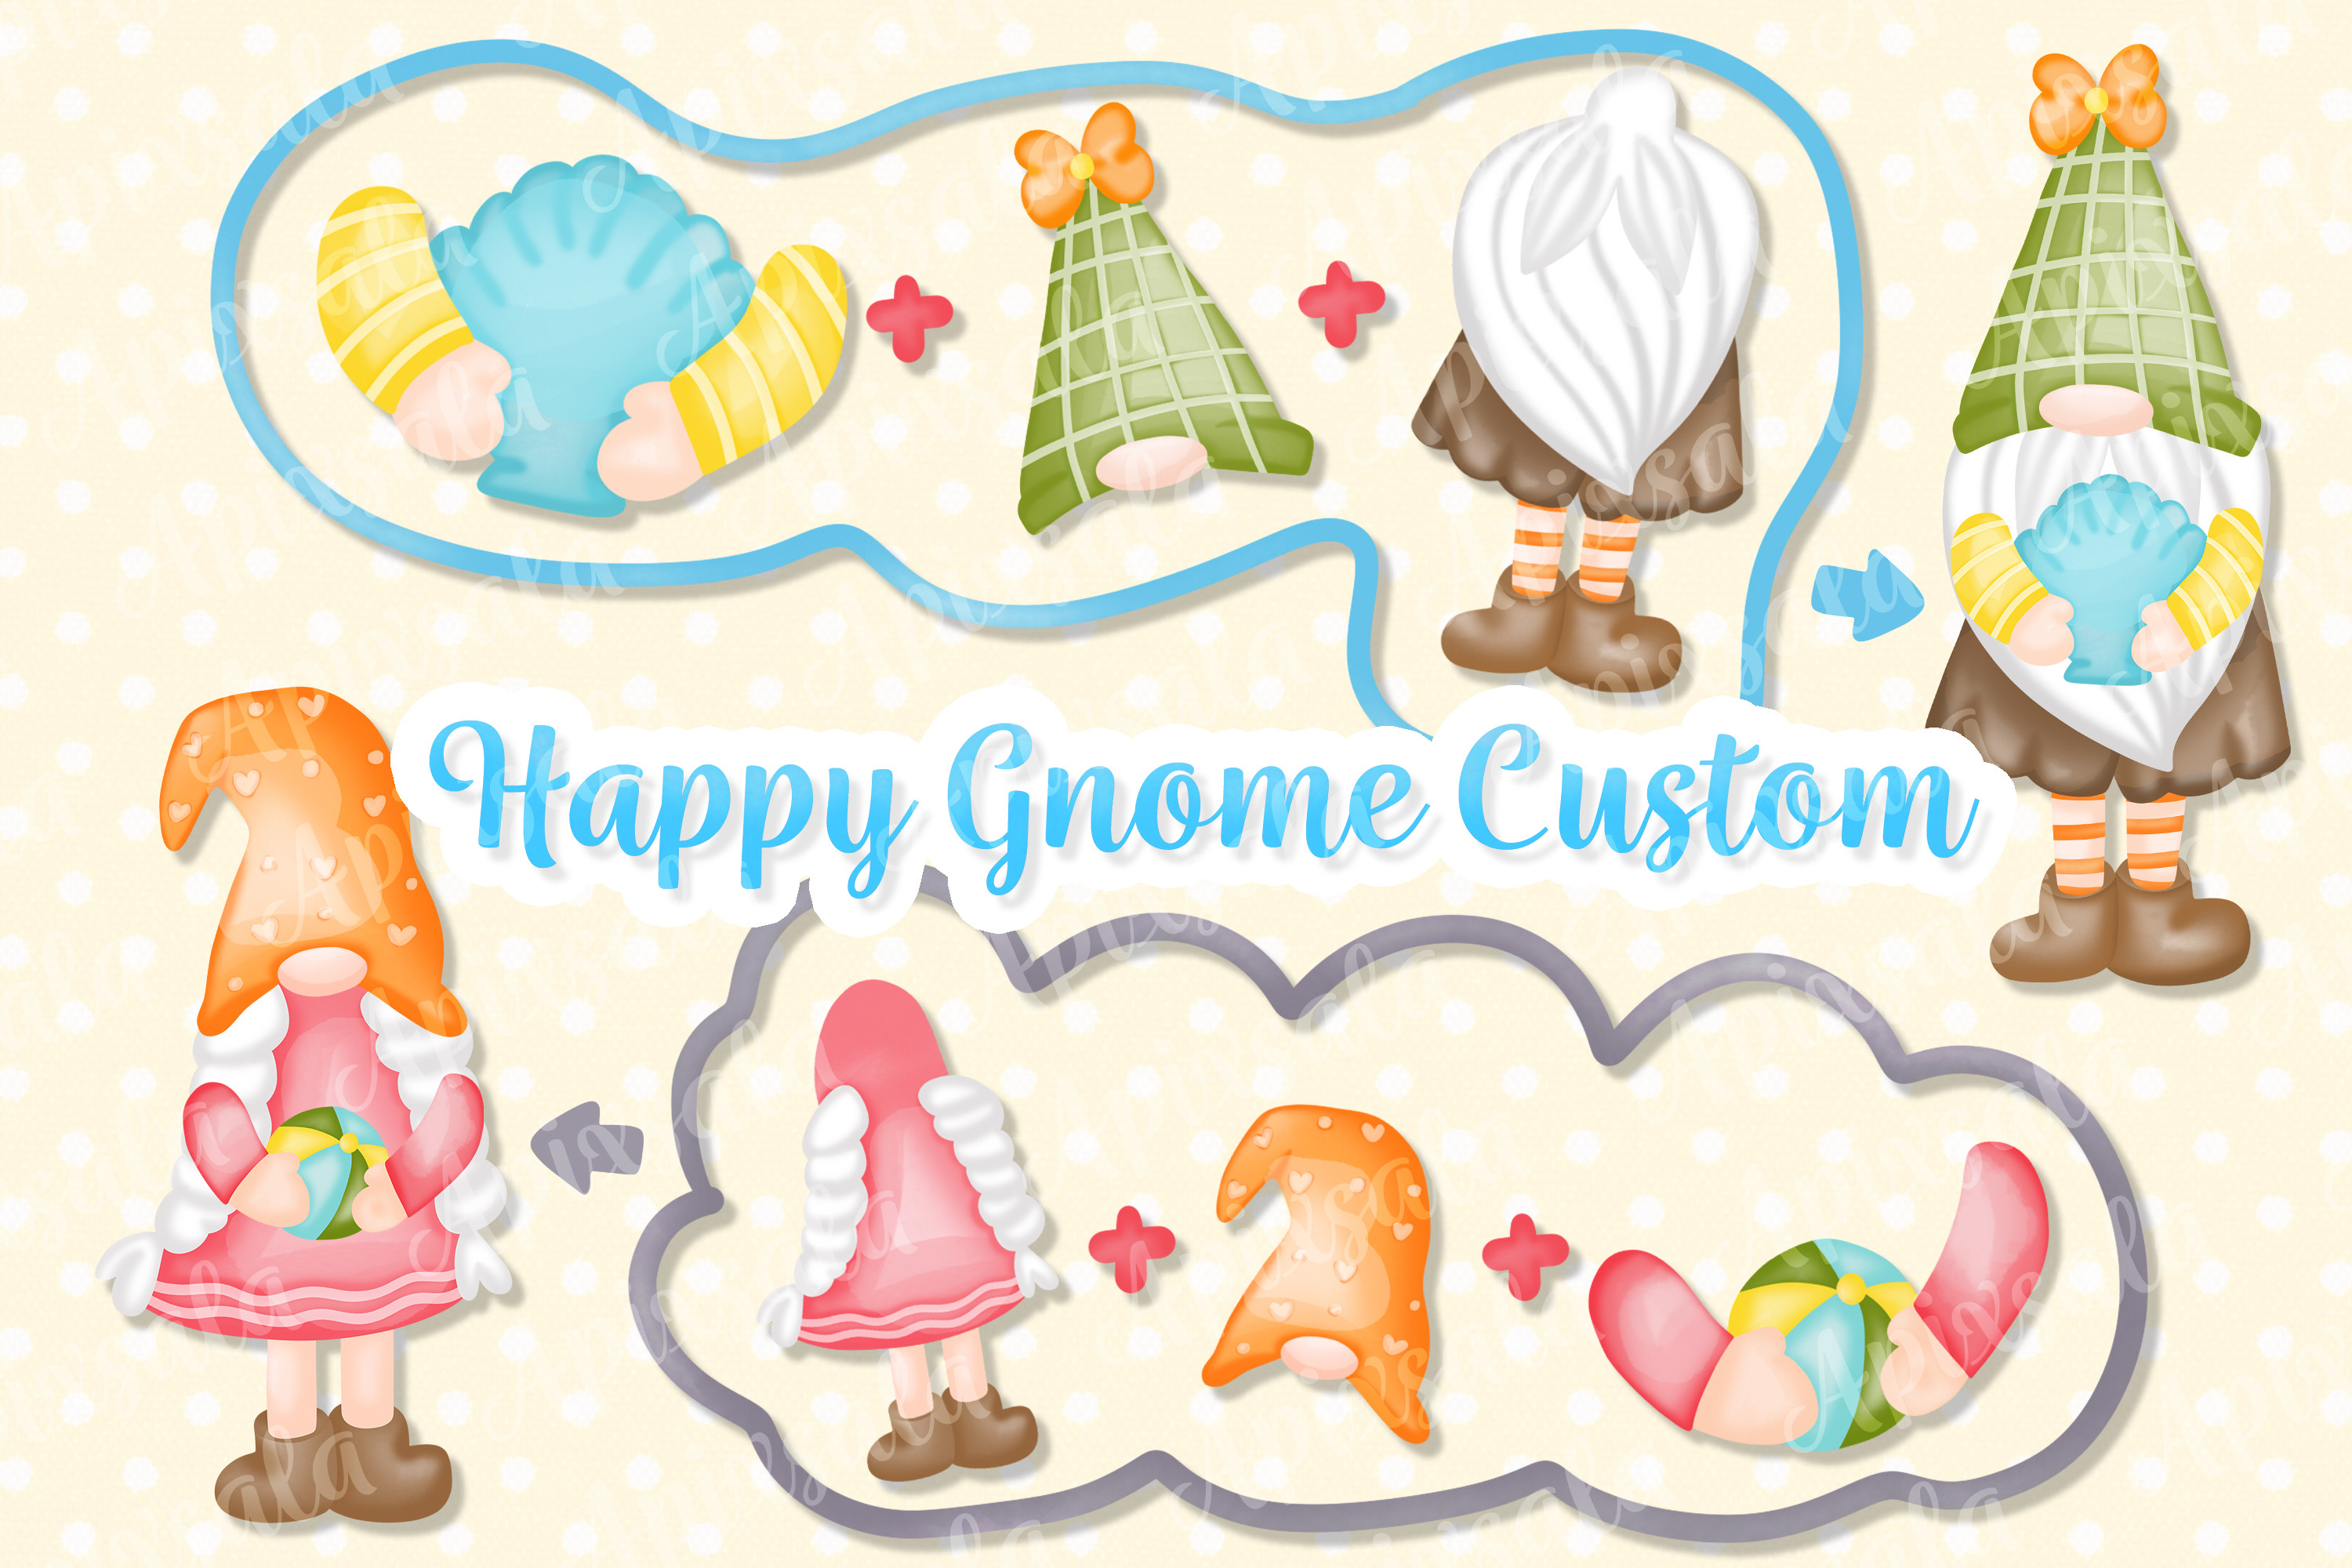 Gnome Custom Watercolor Sublimation-PNG SVG File